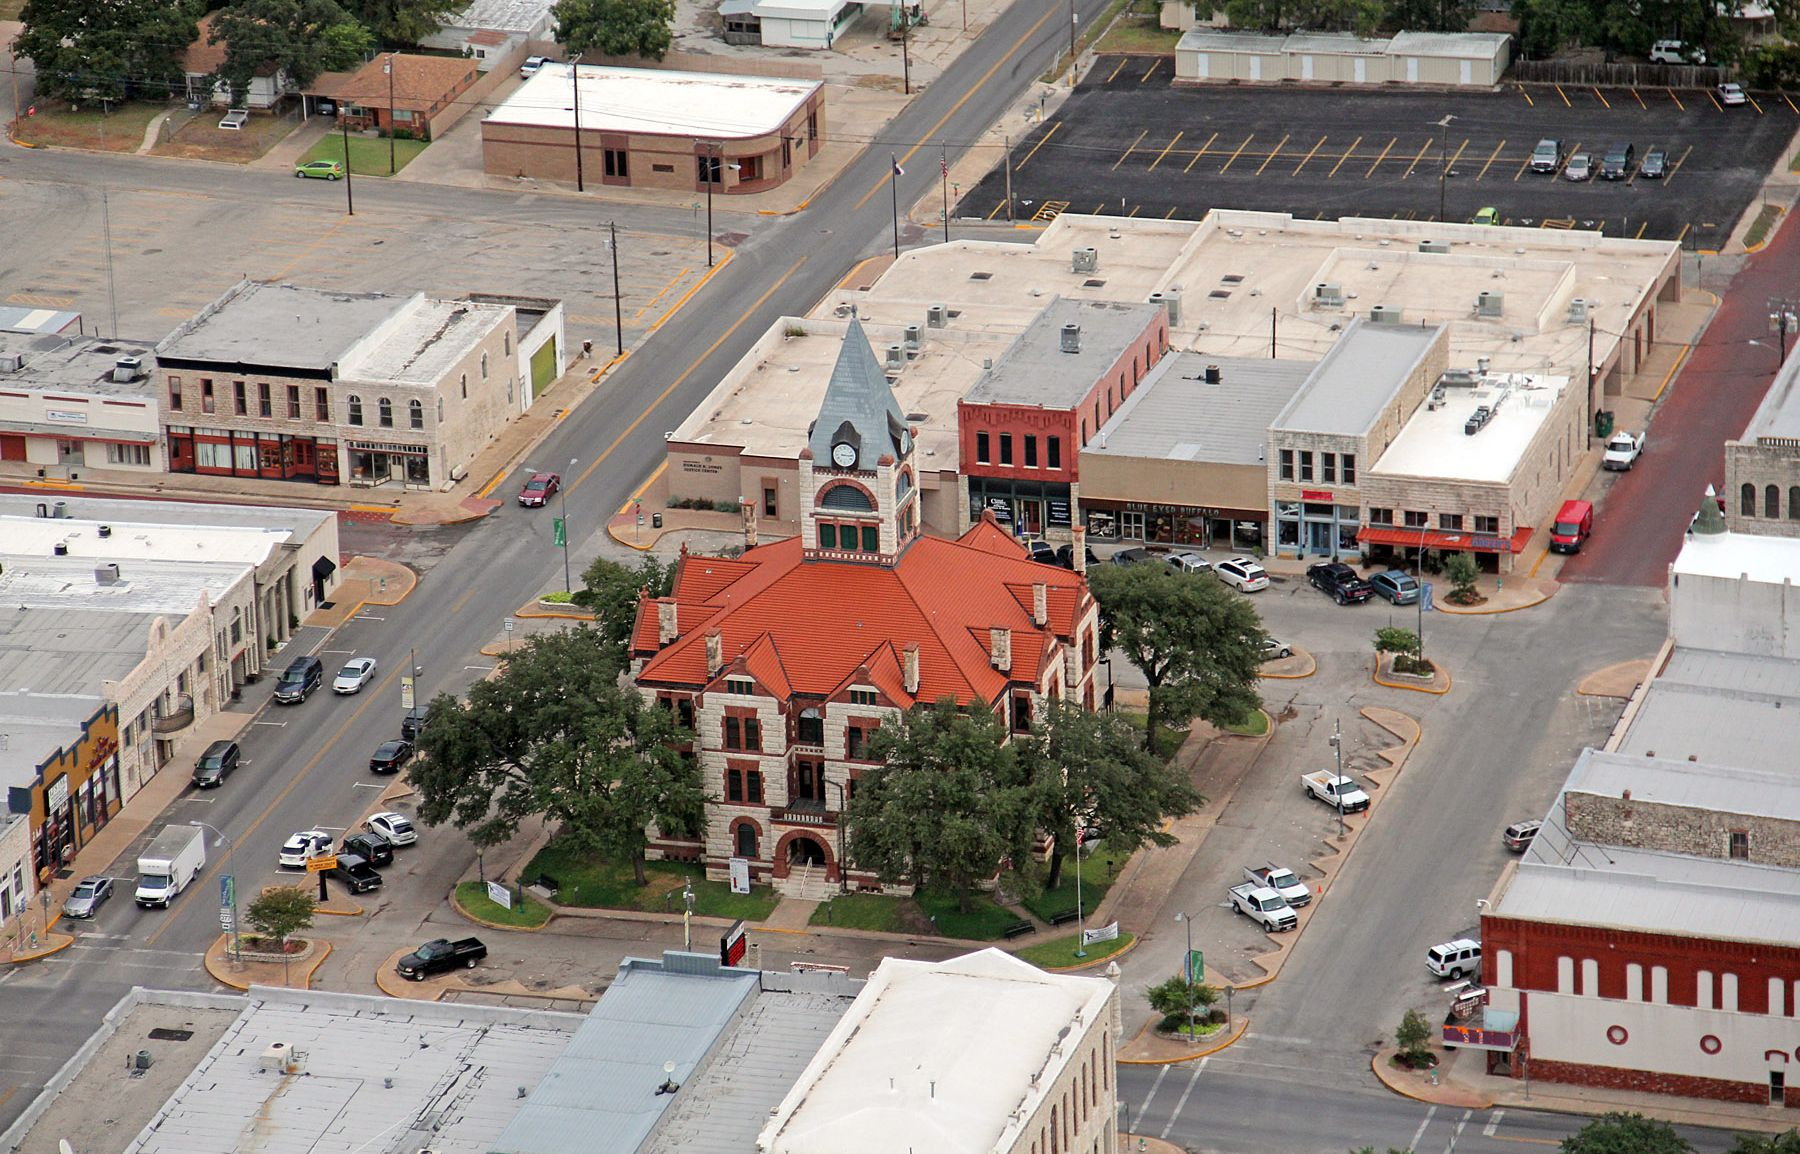 The Erath County Courthouse is the center of Stephenville's downtown Historic District, an area where students from Tarleton State University have begun an inventory of historic commercial buildings.